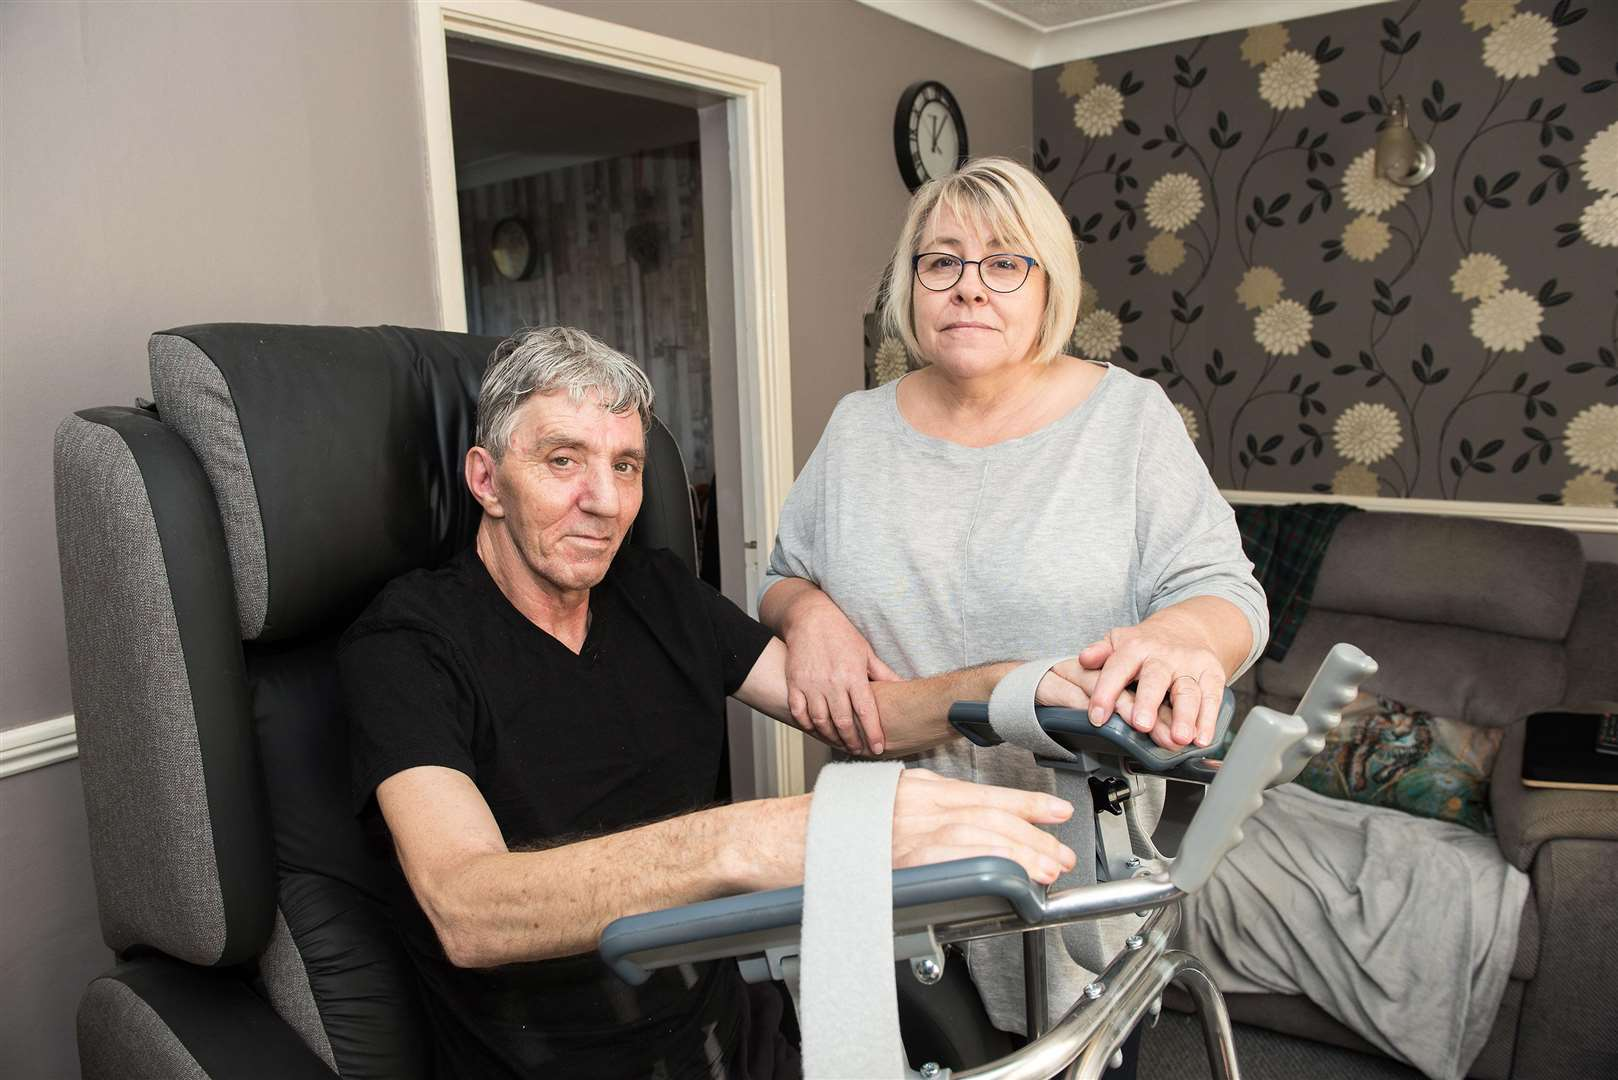 Colin and Jo White are fund-raising and issuing a call for help to build a conservatory and adapt the entrance at the back of their Bury St Edmunds home so Colin, who was left partially paralysed after a fall last December, can look out on to his beloved garden. Picture: Mark Westley.